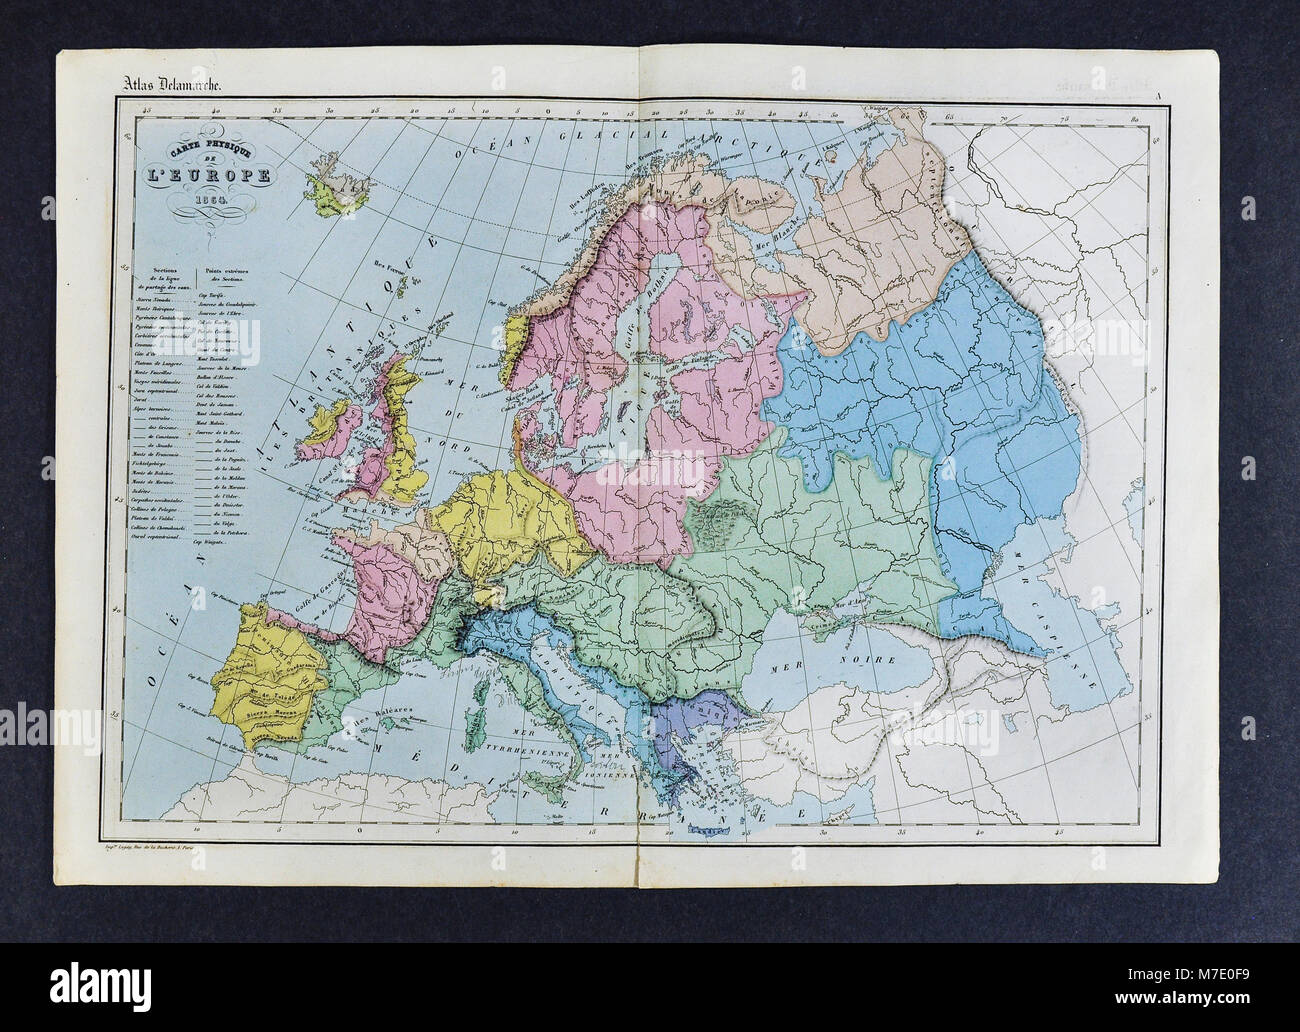 1864 Delamarche Physical Map of Europe Stock Photo ...